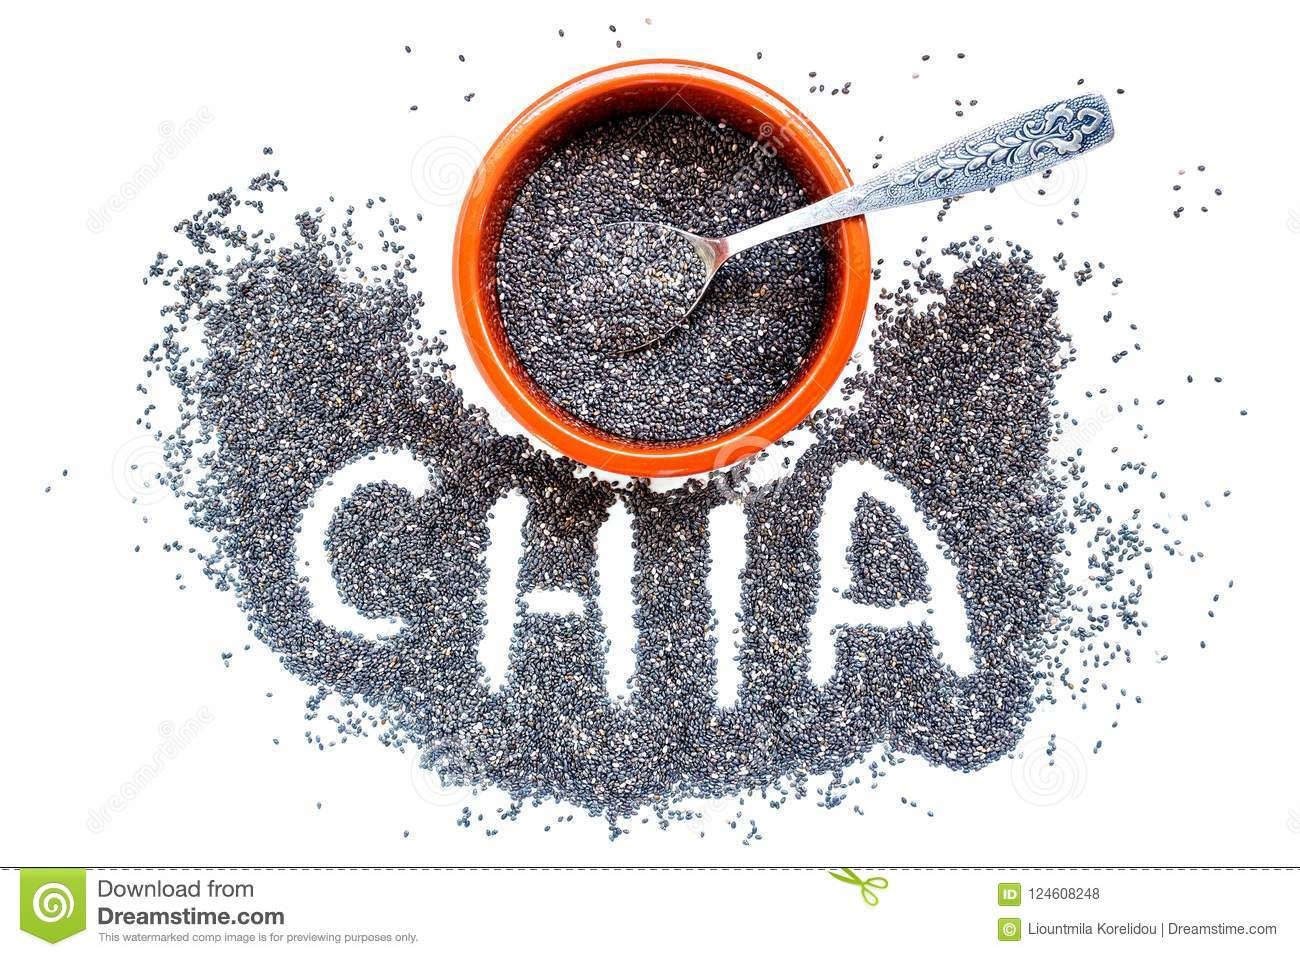 Chia seeds in a ceramic bowl and a small silver spoon.